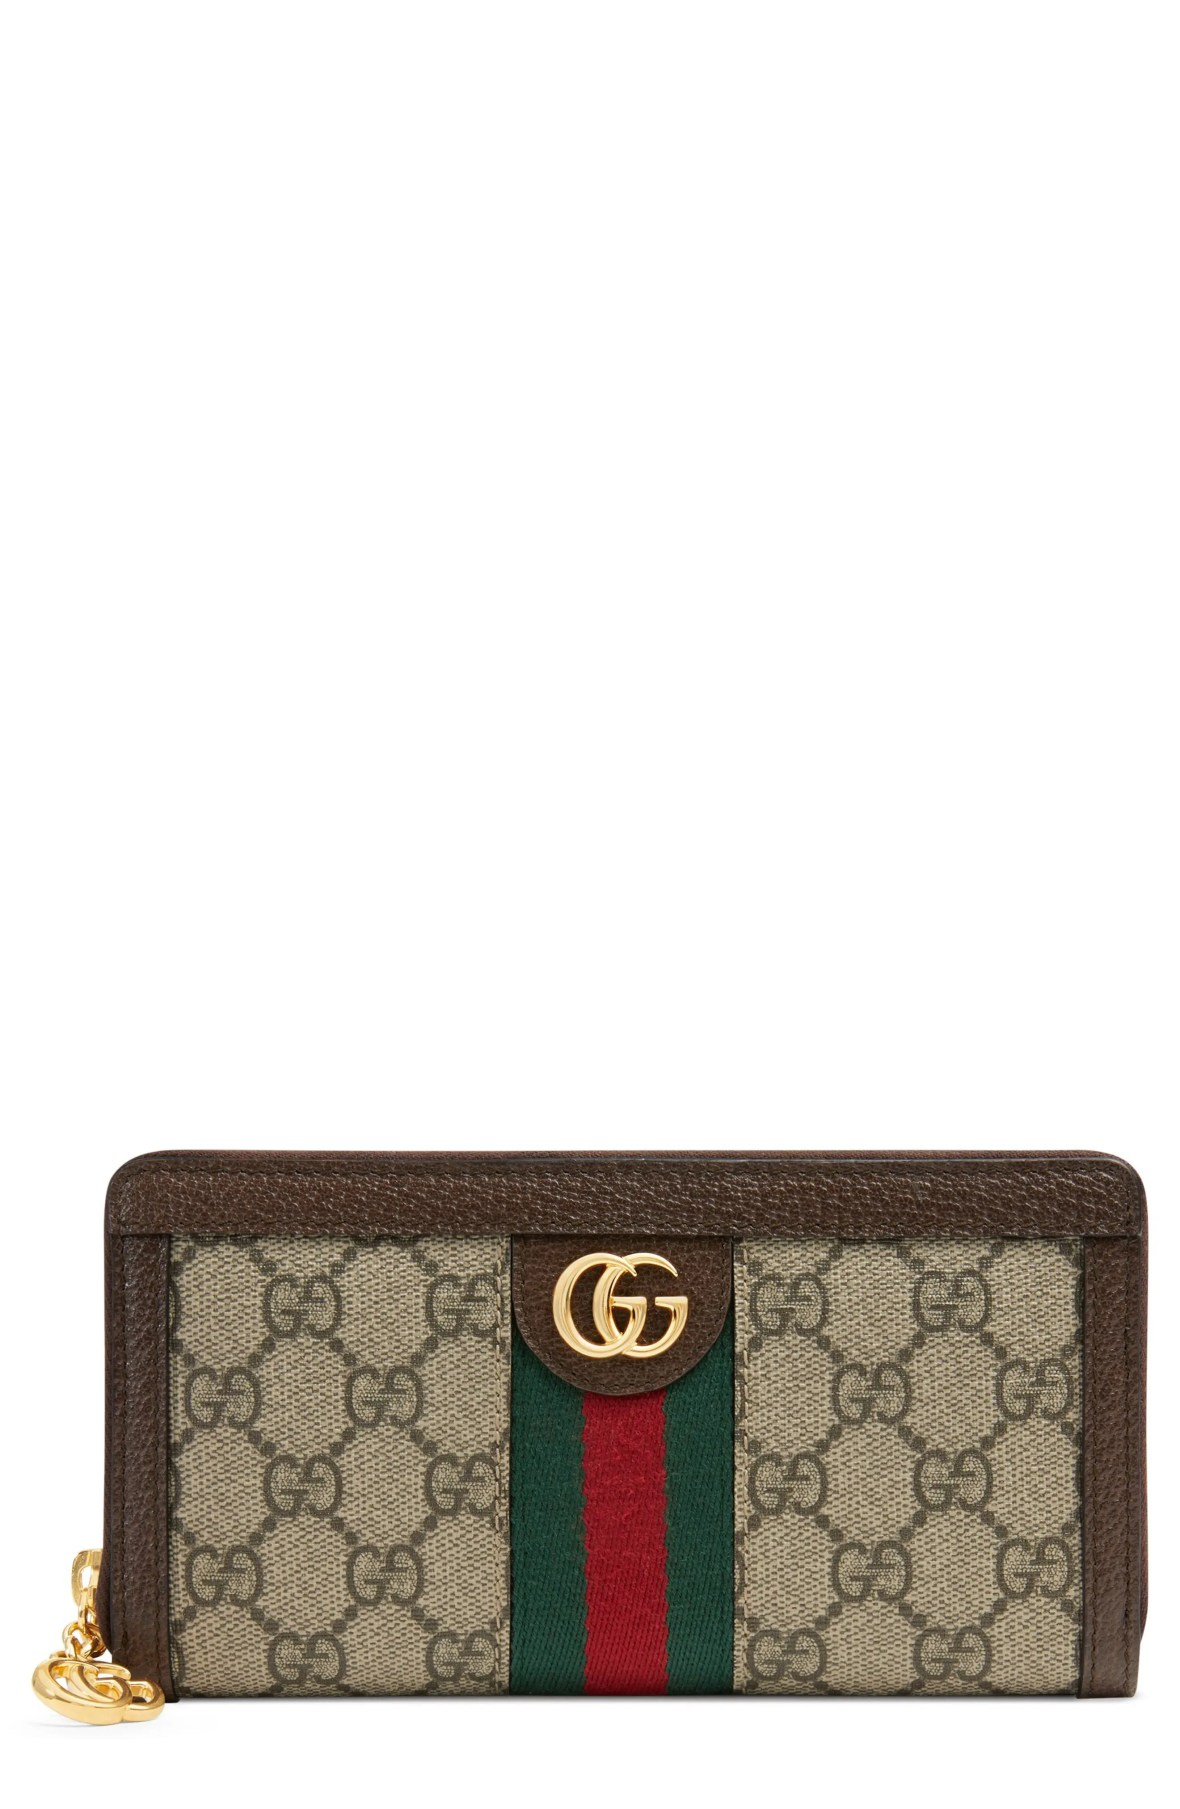 Gucci Ophidia GG Supreme Zip-Around Wallet